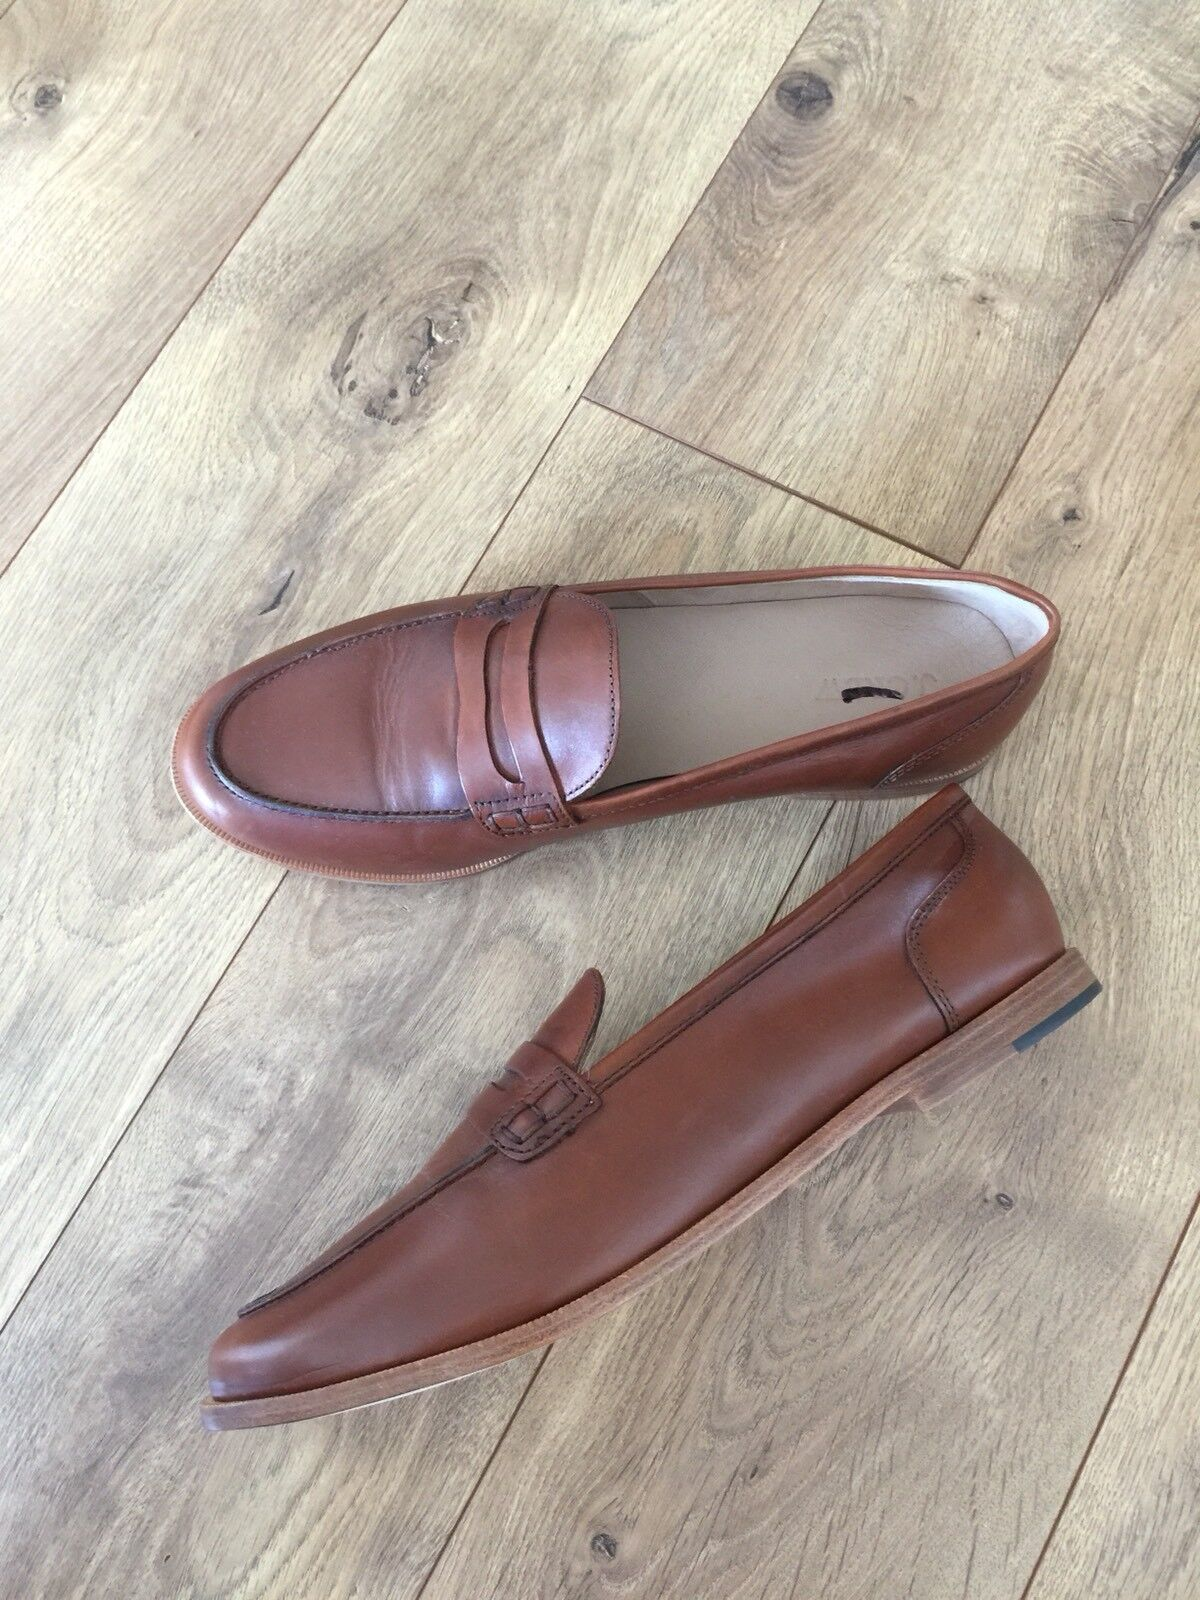 New JCrew Ryan penny penny penny loafers Leather chaussures 11 burnished pecan marron H8200 b30312